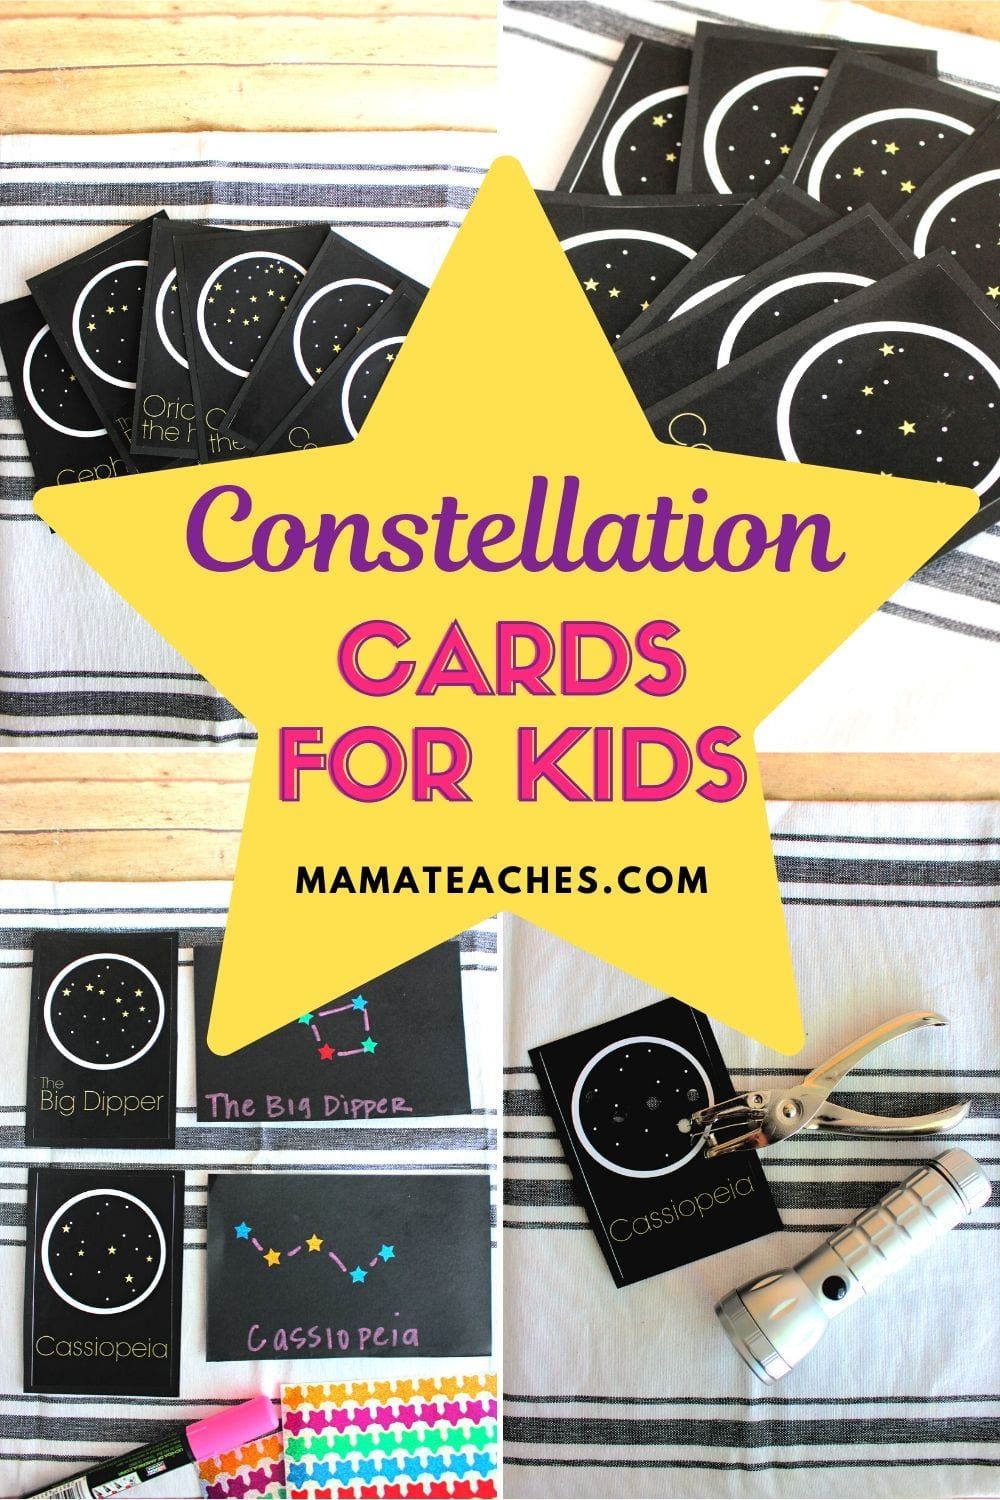 Free Constellation Cards for Kids - Printable Astronomy for Kids - MamaTeaches.com